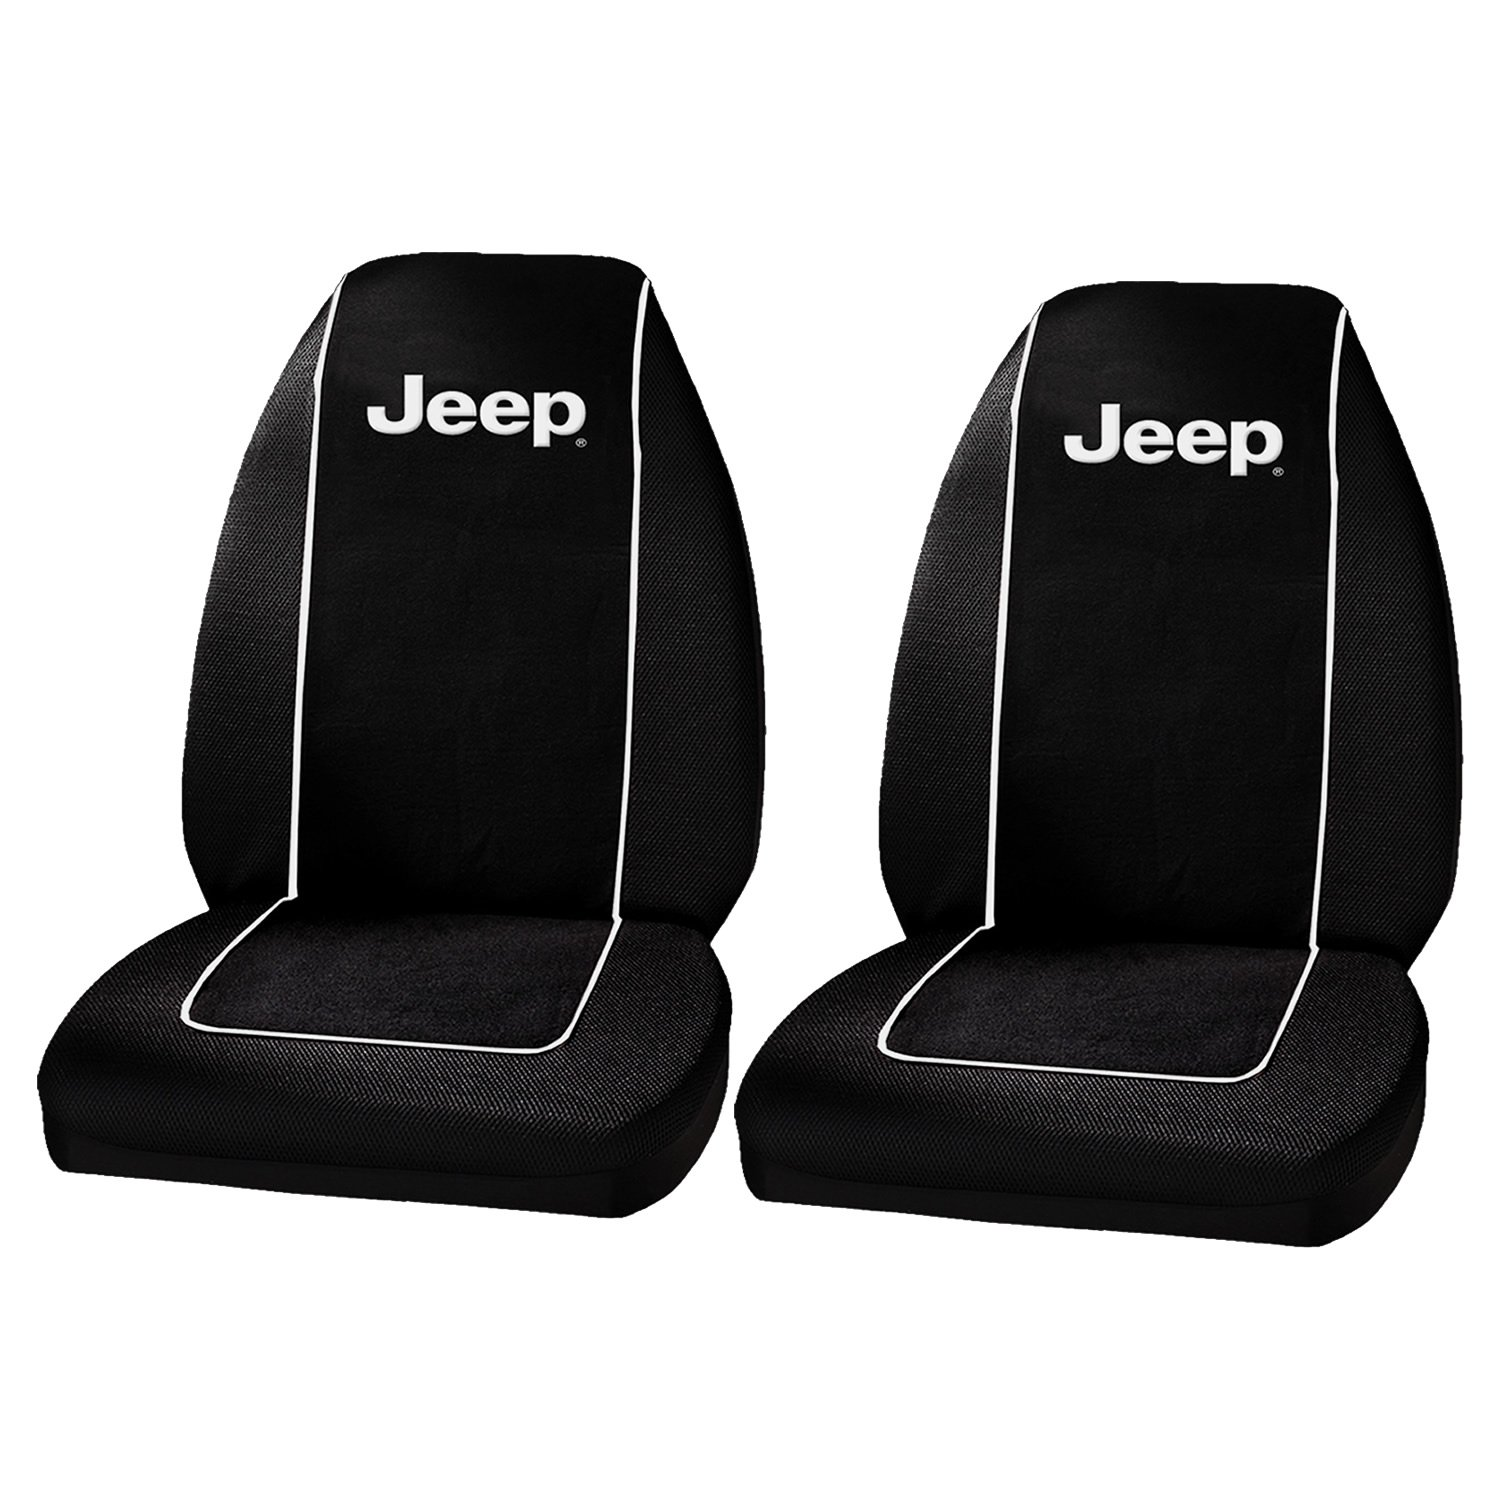 jeep seat to trek pair parts enlarge covers wrangler jk front armor click